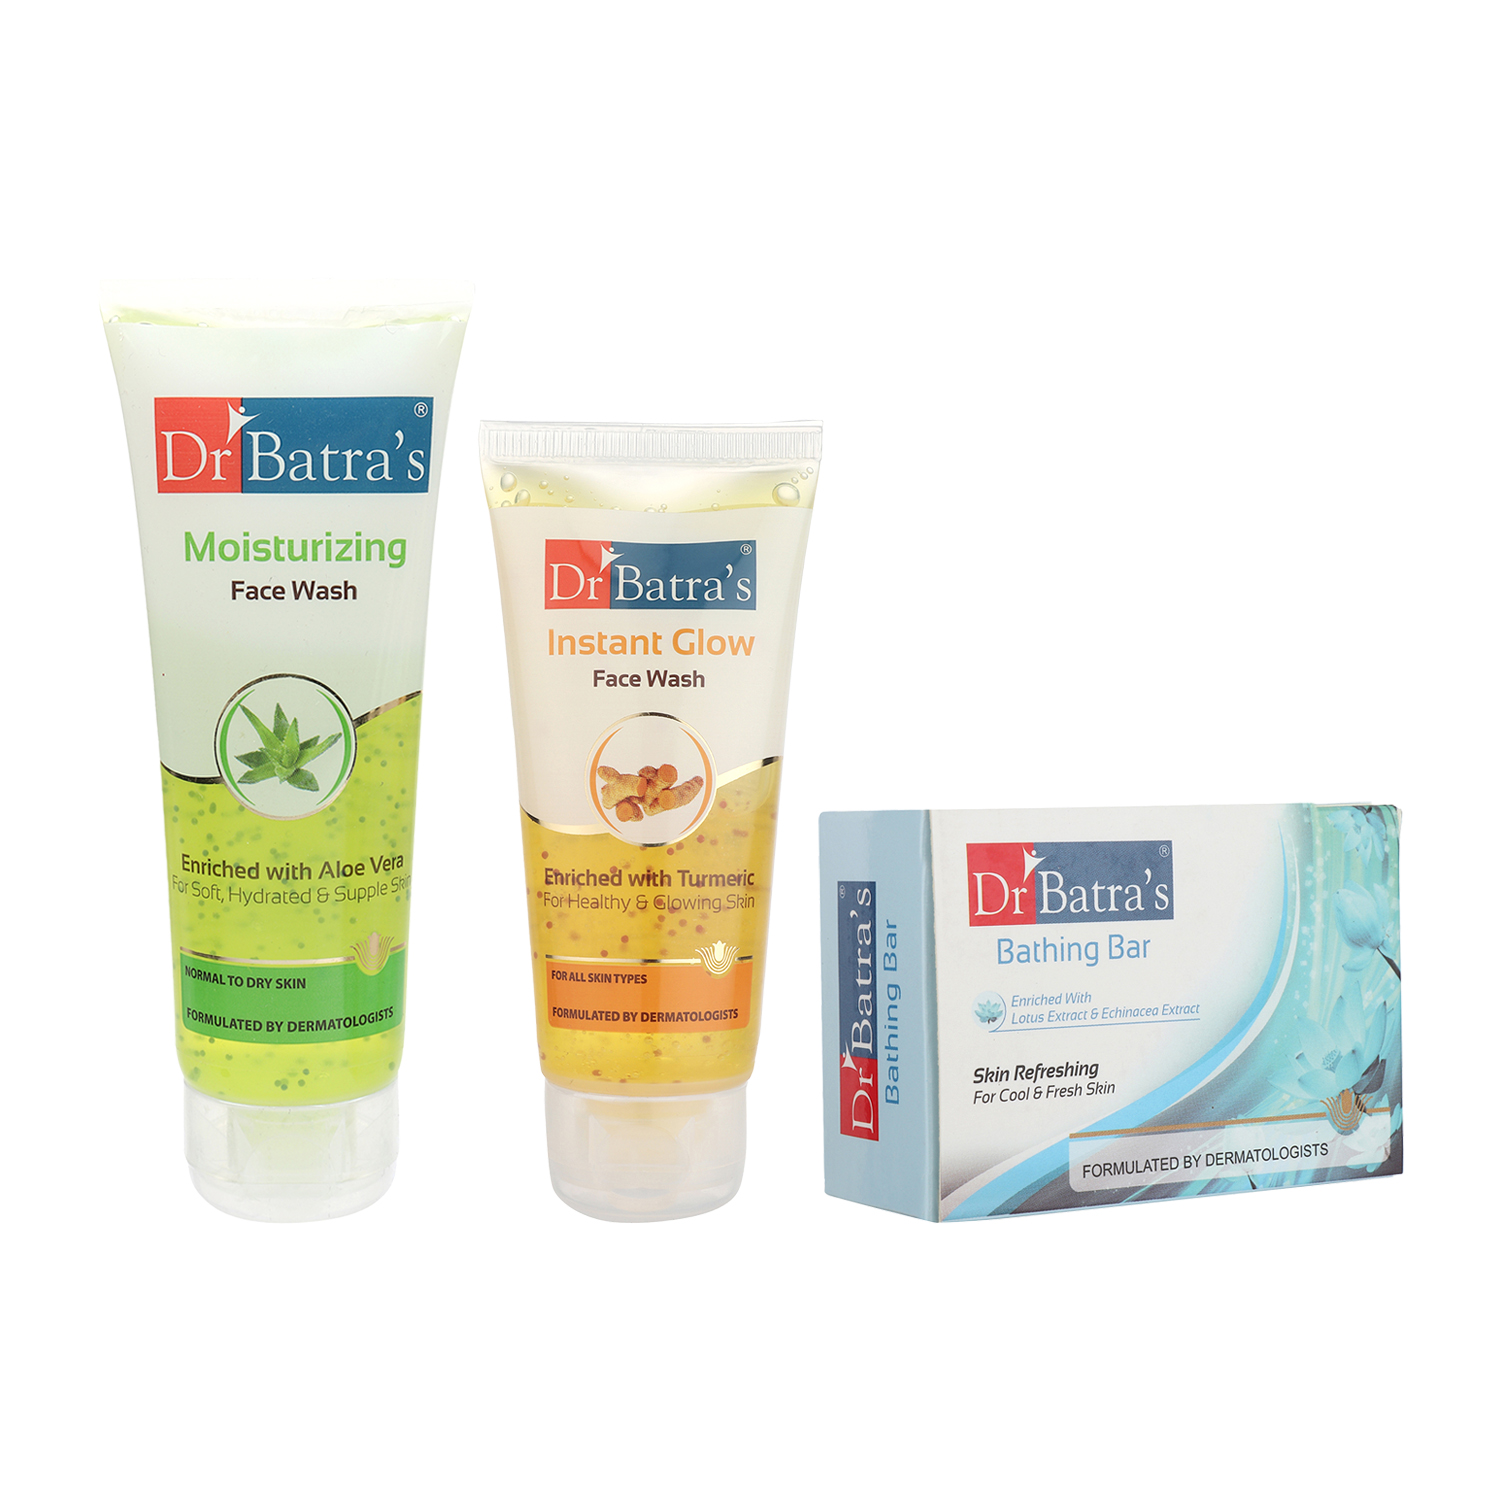 Dr Batra's | Dr Batra's Face Wash Moisturizing - 100 gm, Face Wash Instant Glow - 50 gm and Skin Refreshing Bathing Bar - 125 gm (Pack of 3 for Men and Women)